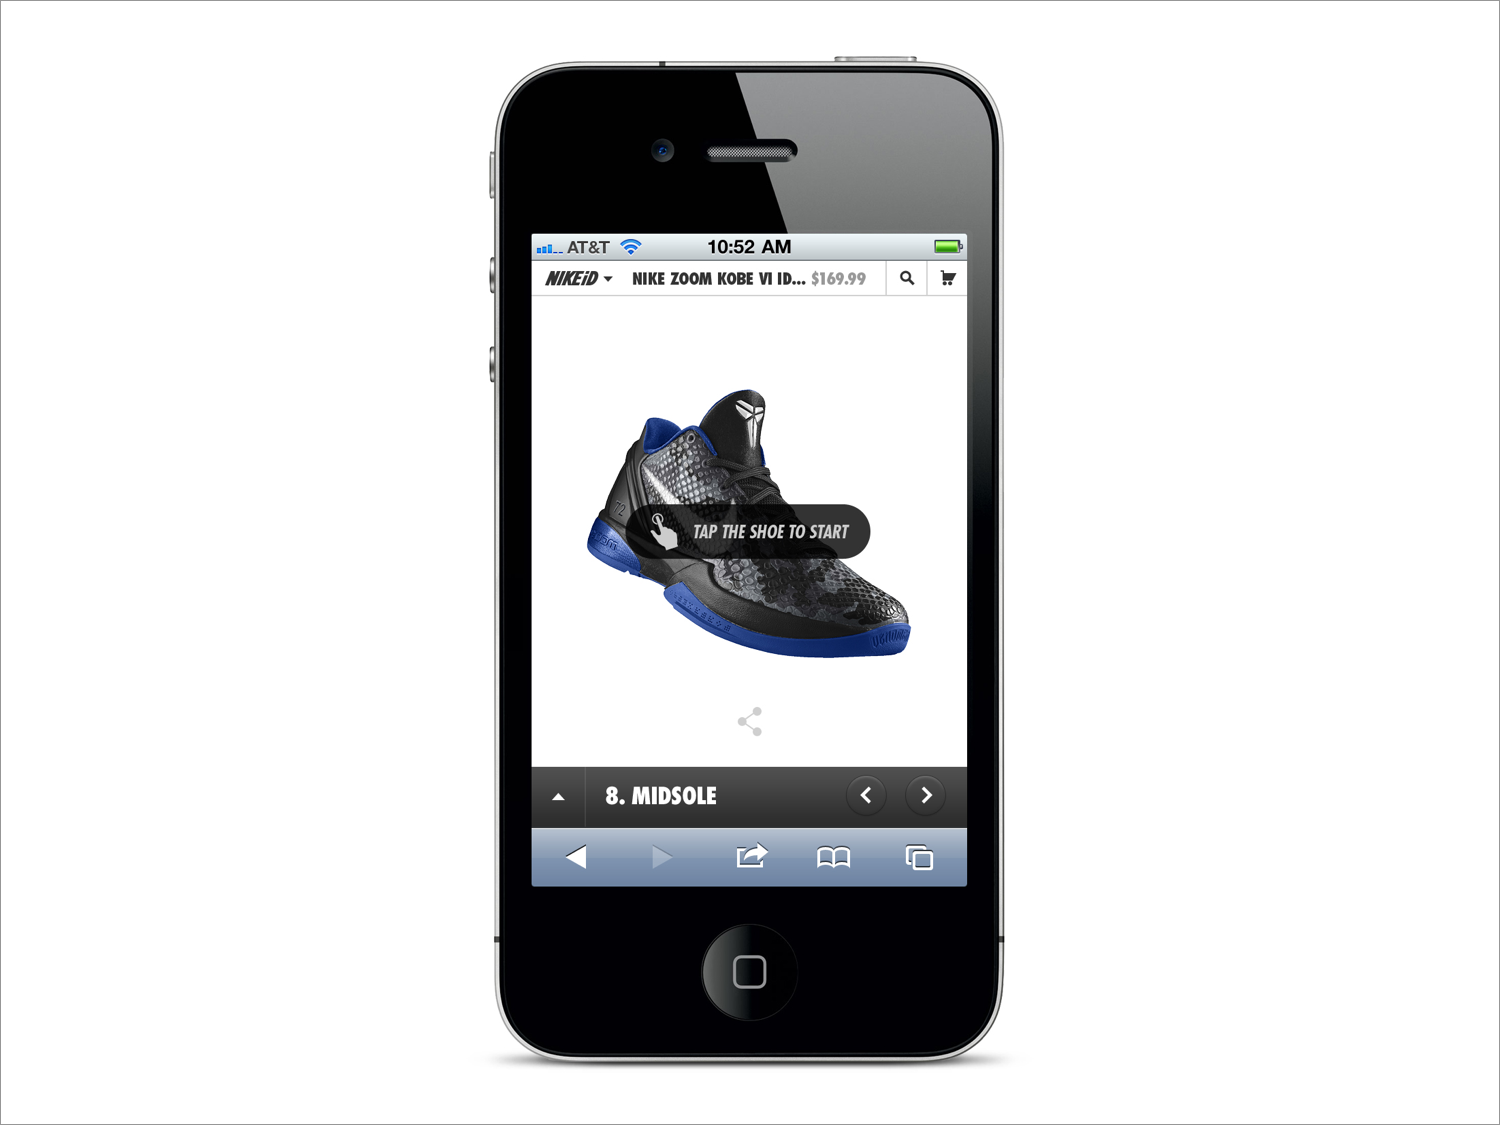 For the phone experience, tapping the shoe brings up the customization options.